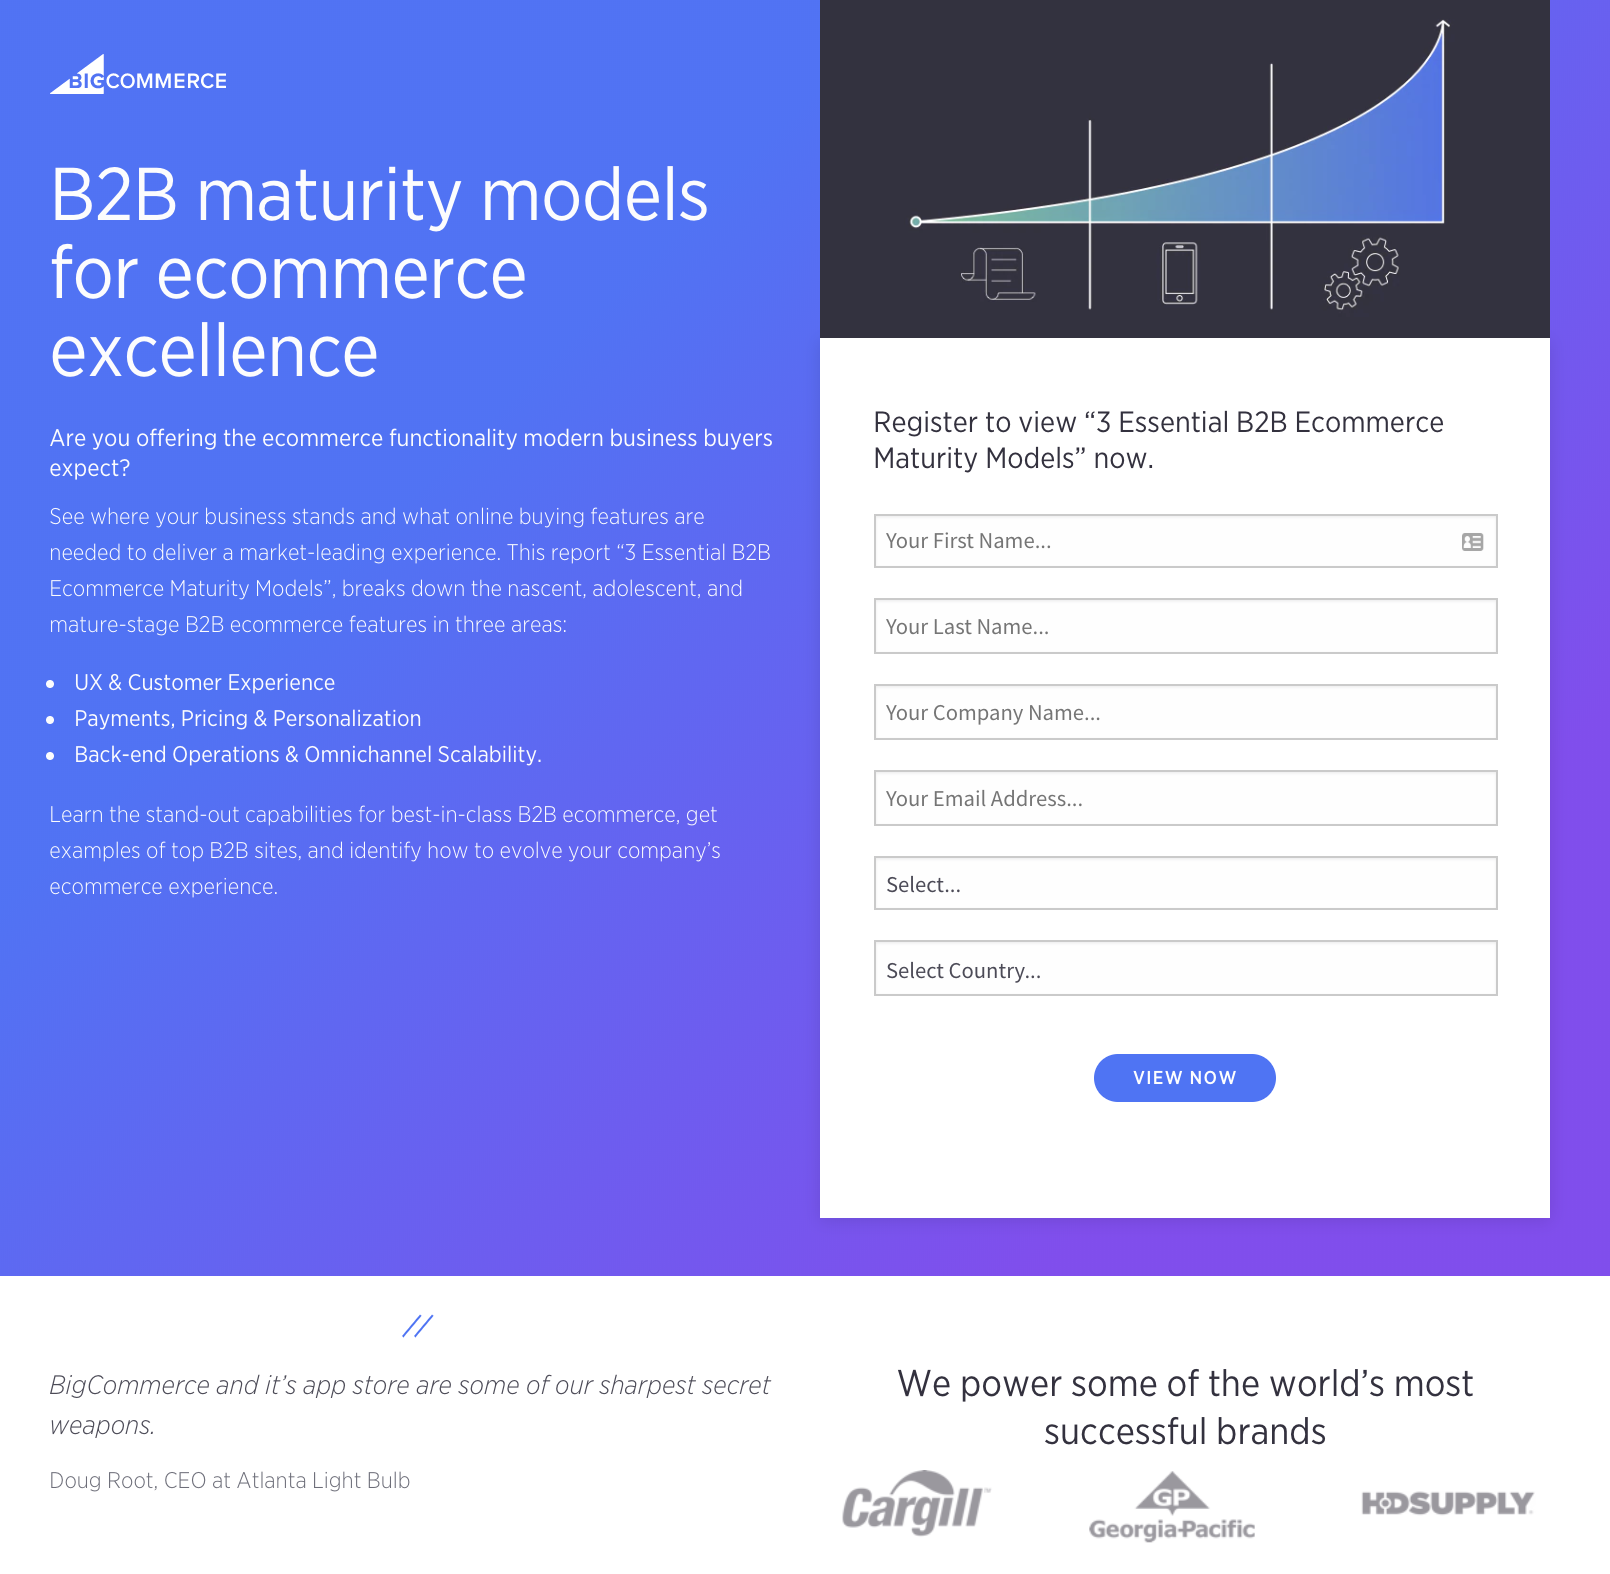 bigcommerce dedicated landing page.